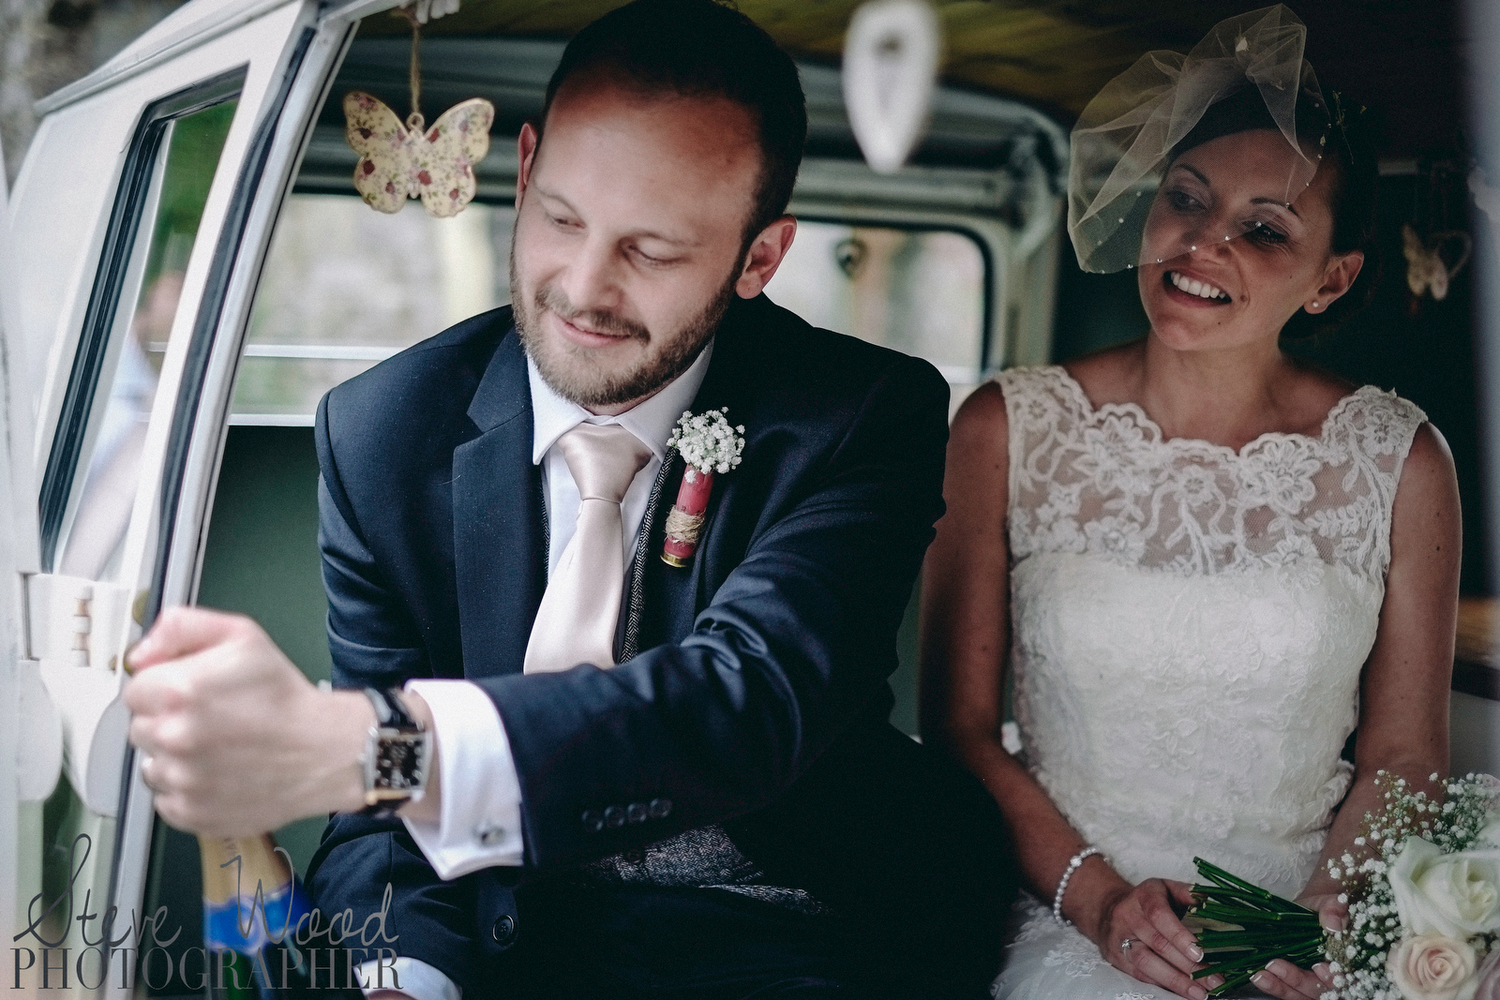 Joint ventures with VW Brides of Bexley, Kent — Steve Wood Photographer